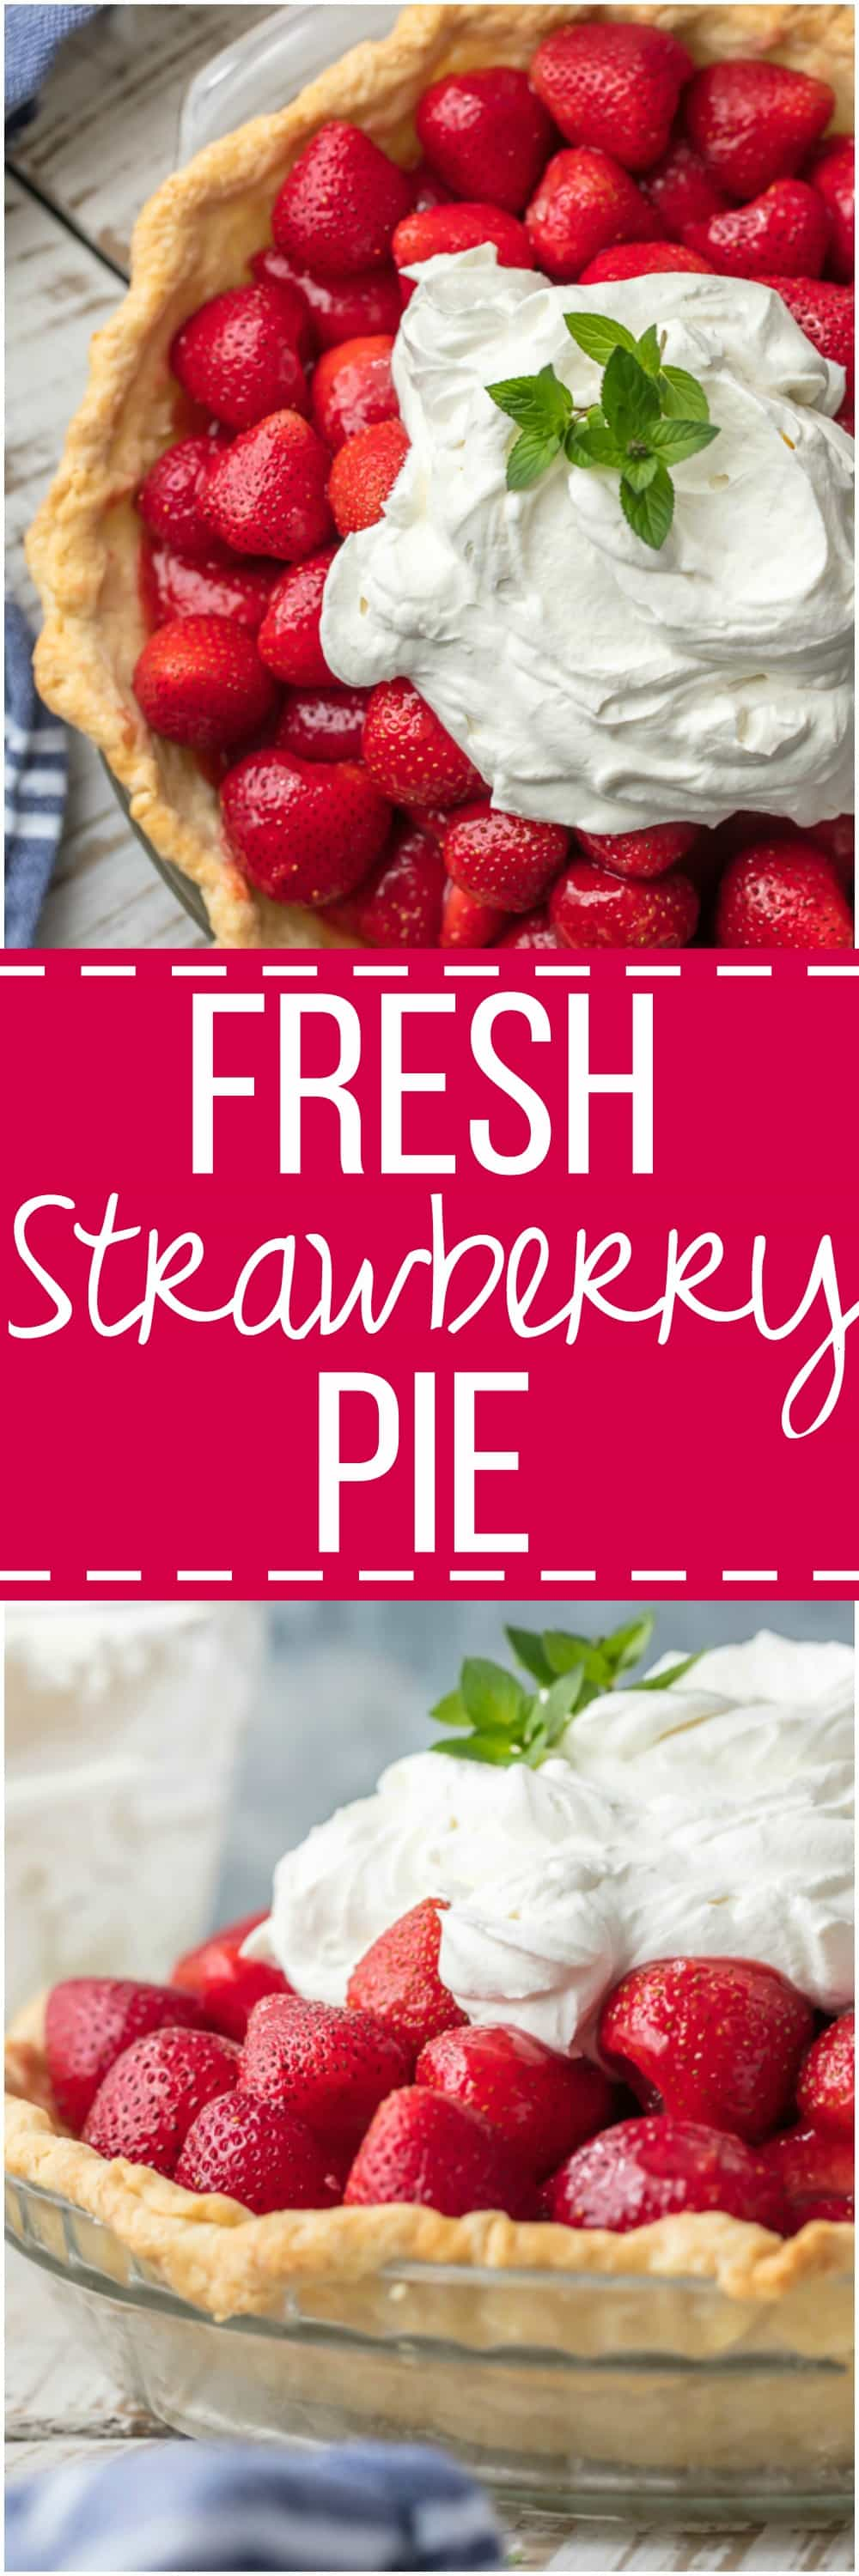 It wouldn't be a celebration without FRESH STRAWBERRY PIE! The ultimate gorgeous, delicious, and simple dessert just perfect for every occasion.